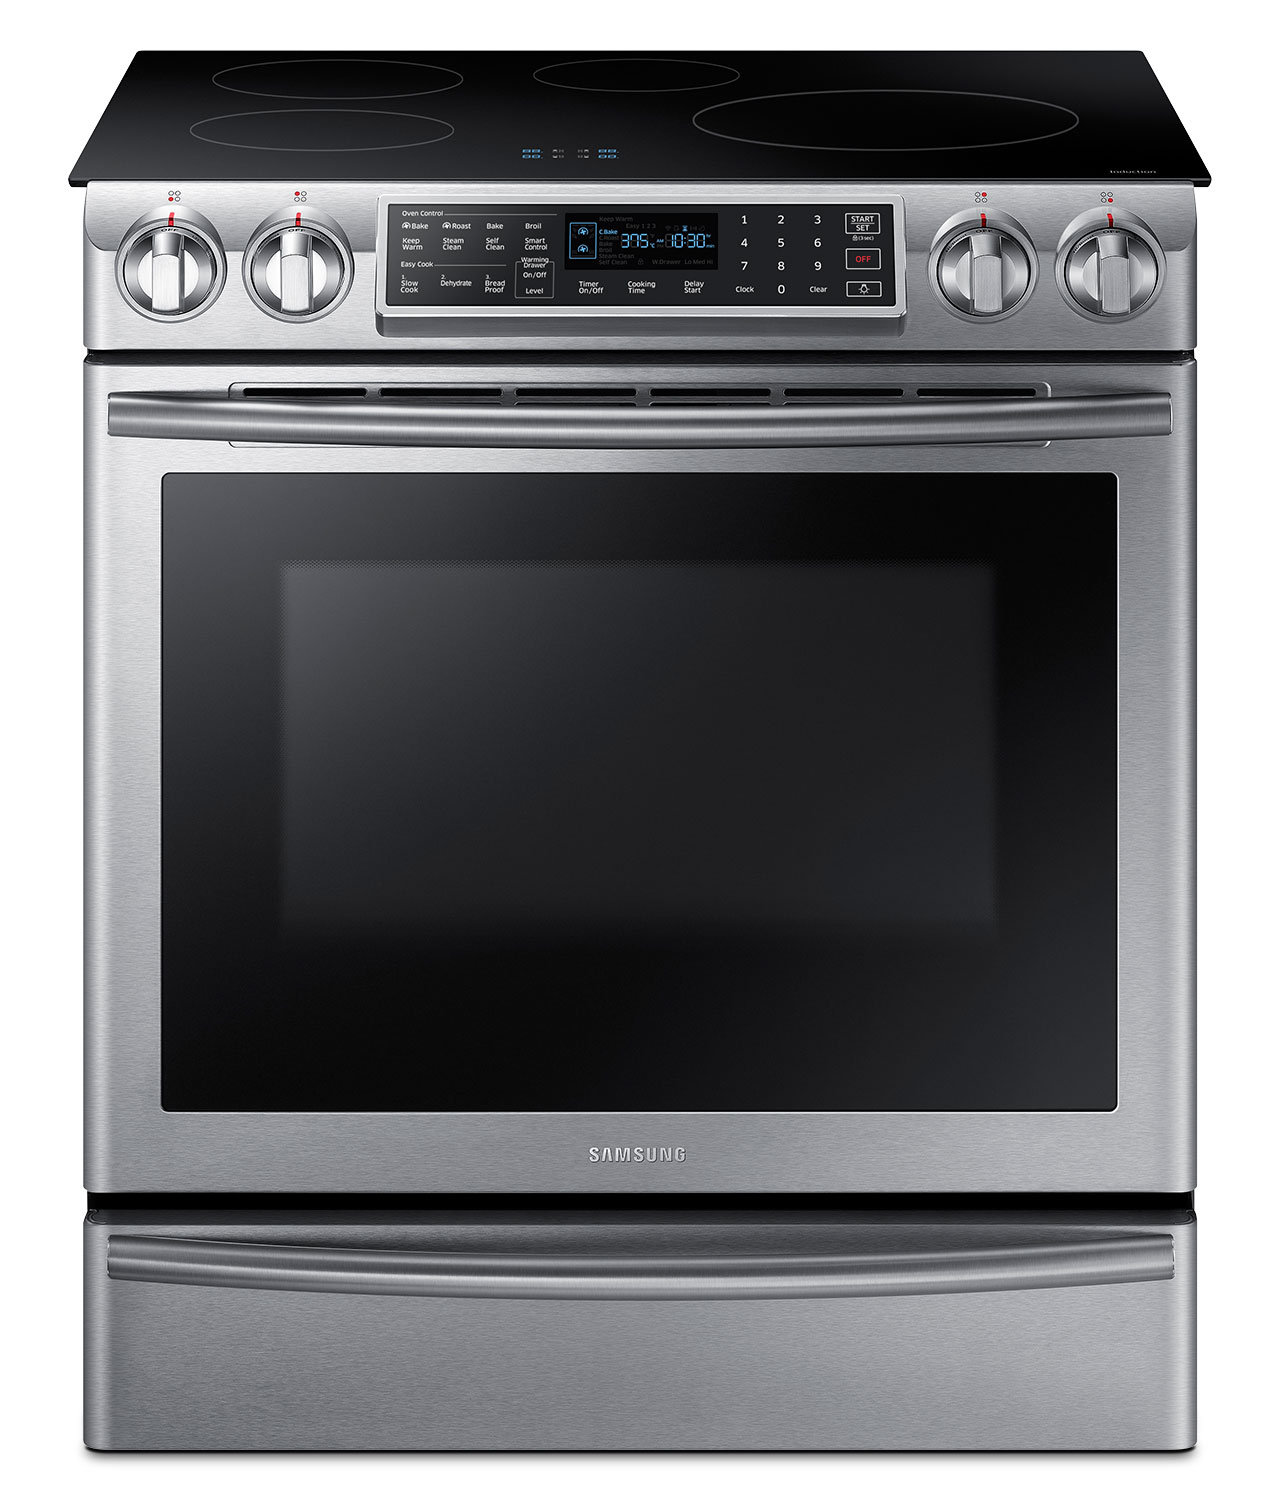 Samsung Slide-In Stainless Steel Induction Range (5.8 Cu. Ft.) - NE58K9560WS/AC